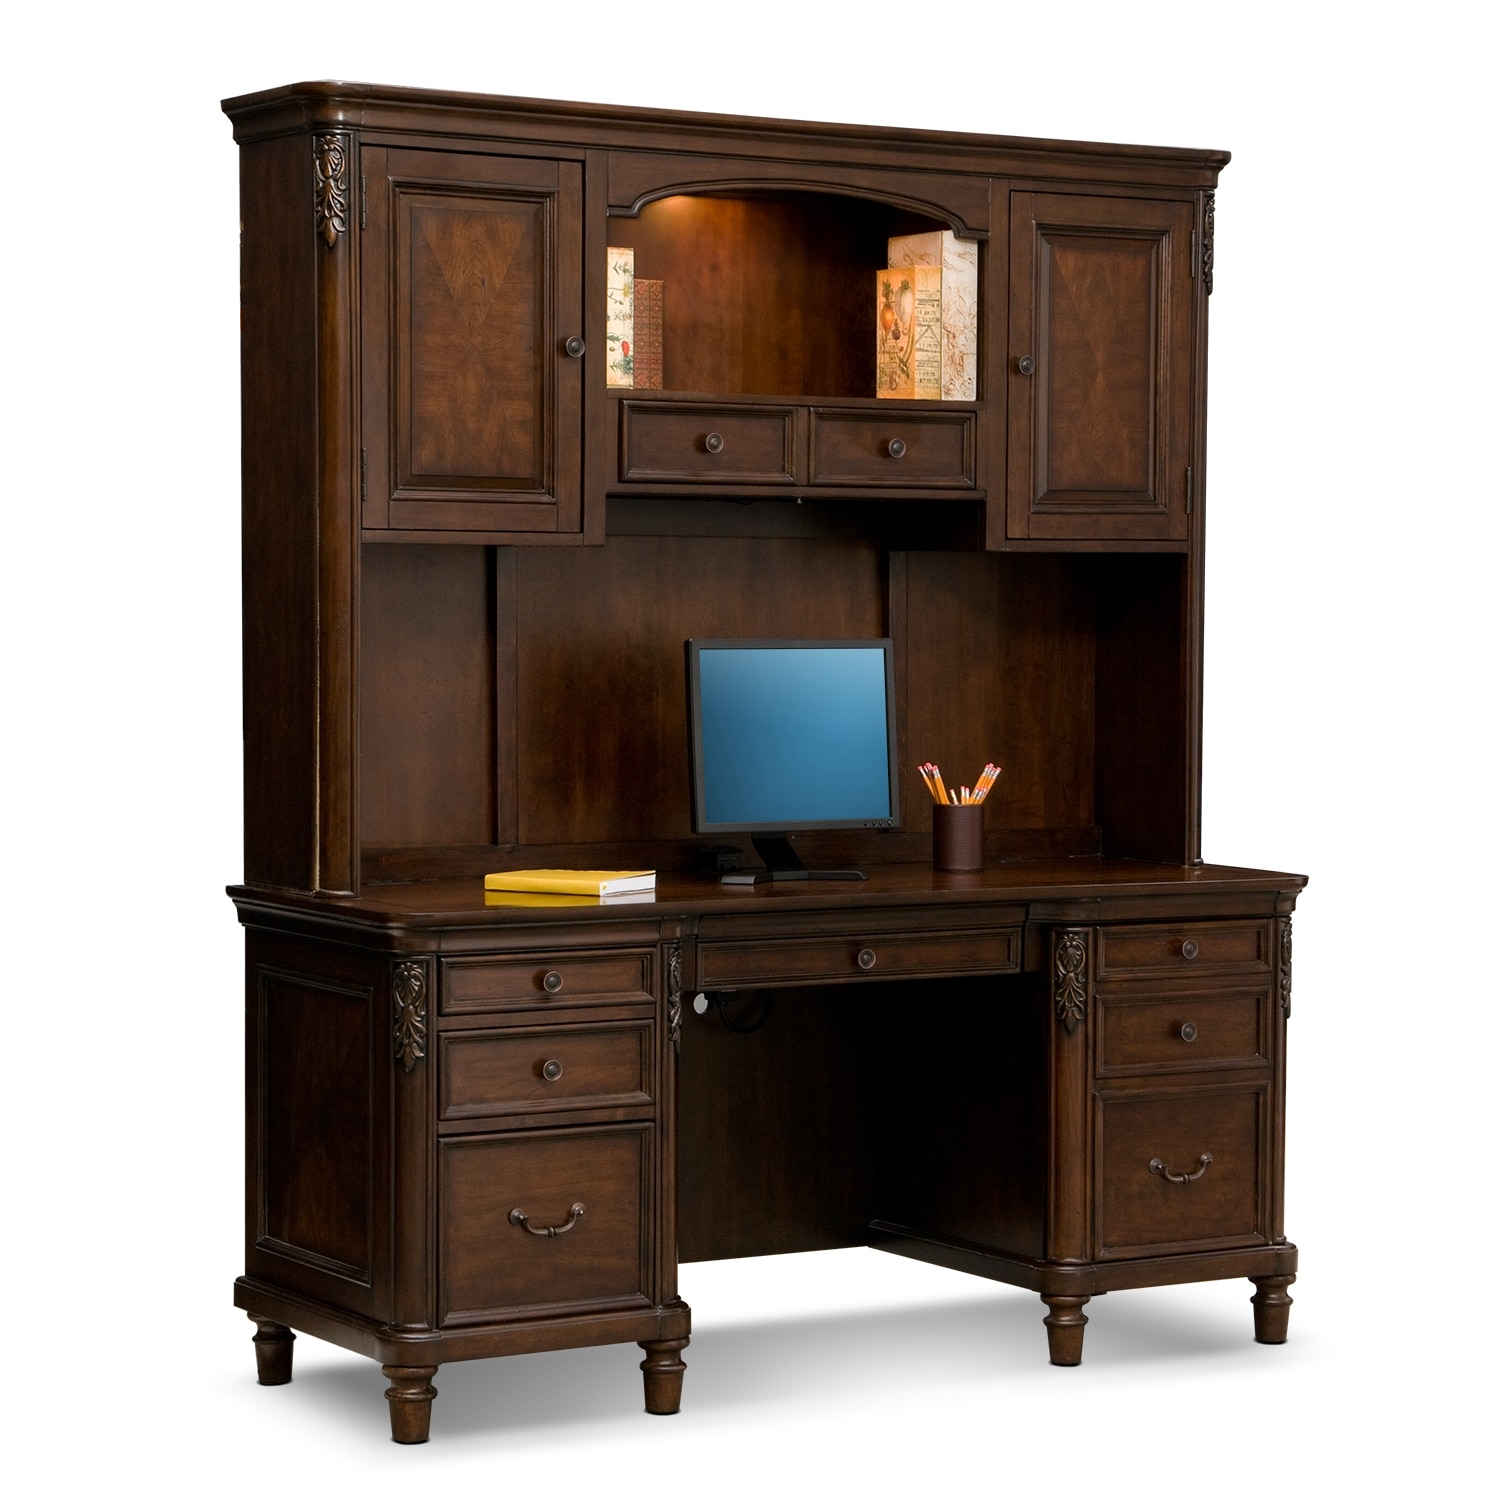 Ashland Credenza Desk with Hutch - Cherry